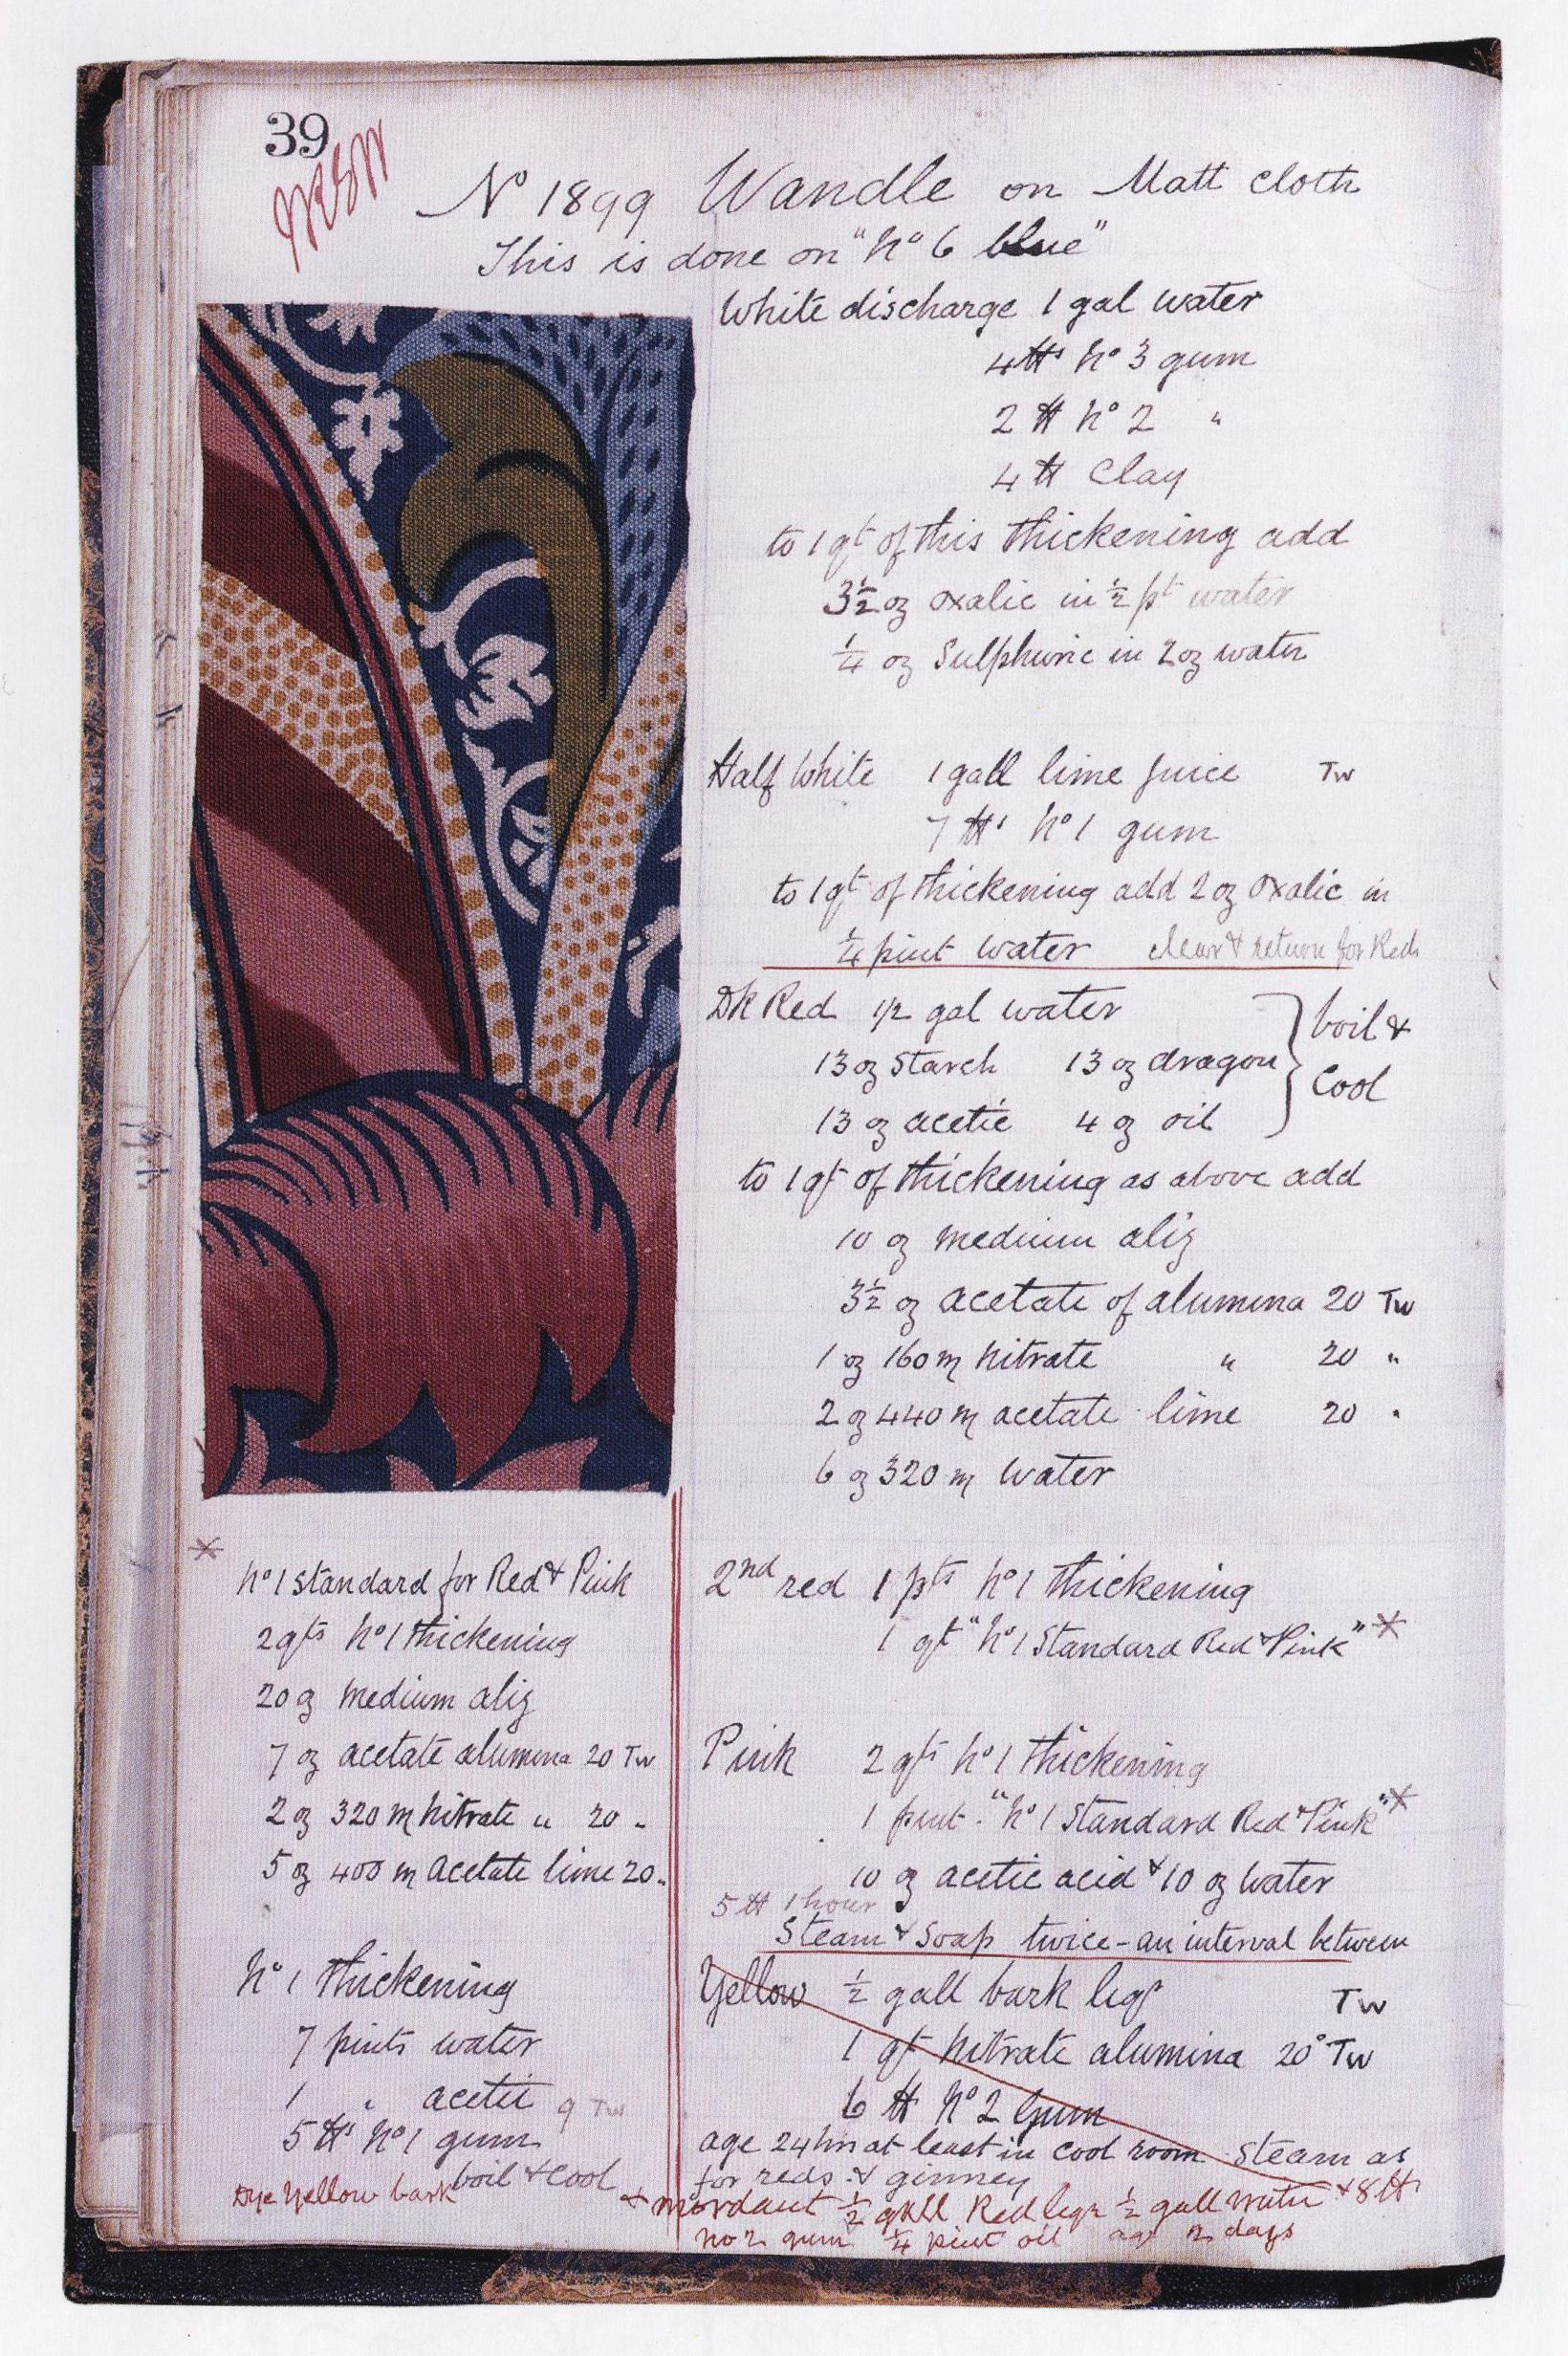 This is a book page from William Morris' Merton Abbey Dye Recipe Book...Morris was very interested in using natural dyes...